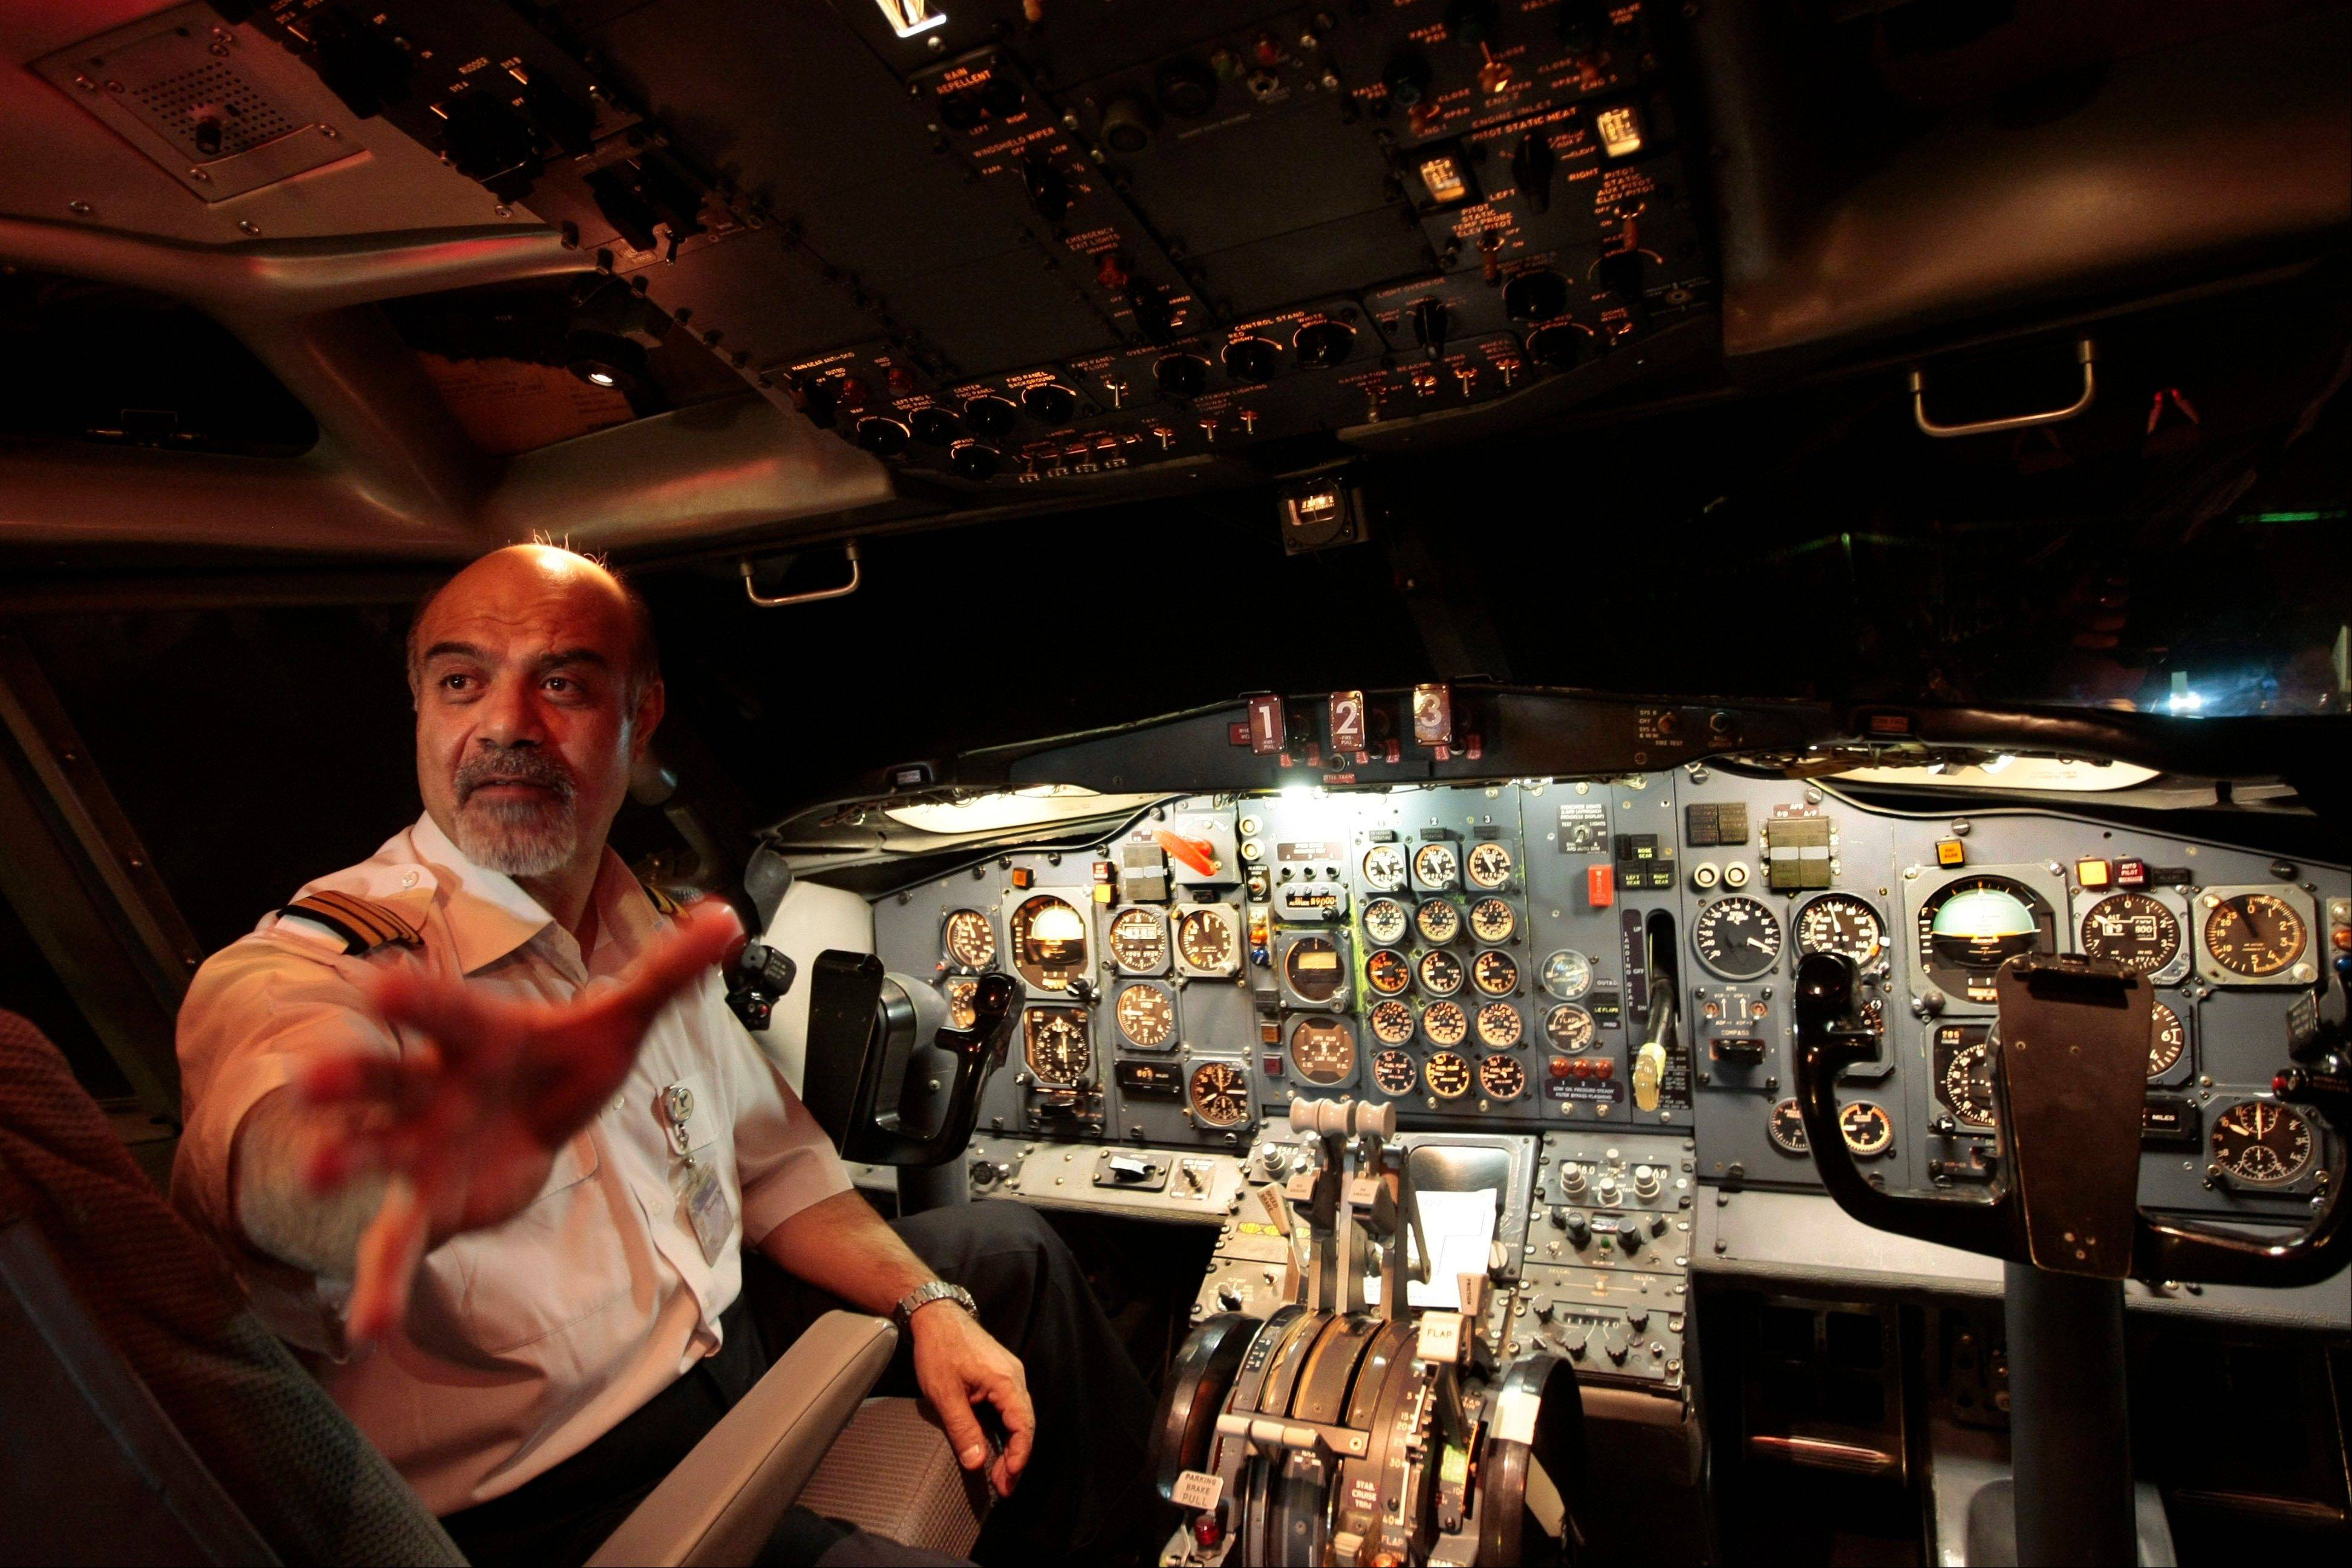 Captain Hooshang Shahbazi in a flight simulator at the Mehrabad airport in Tehran, Iran.